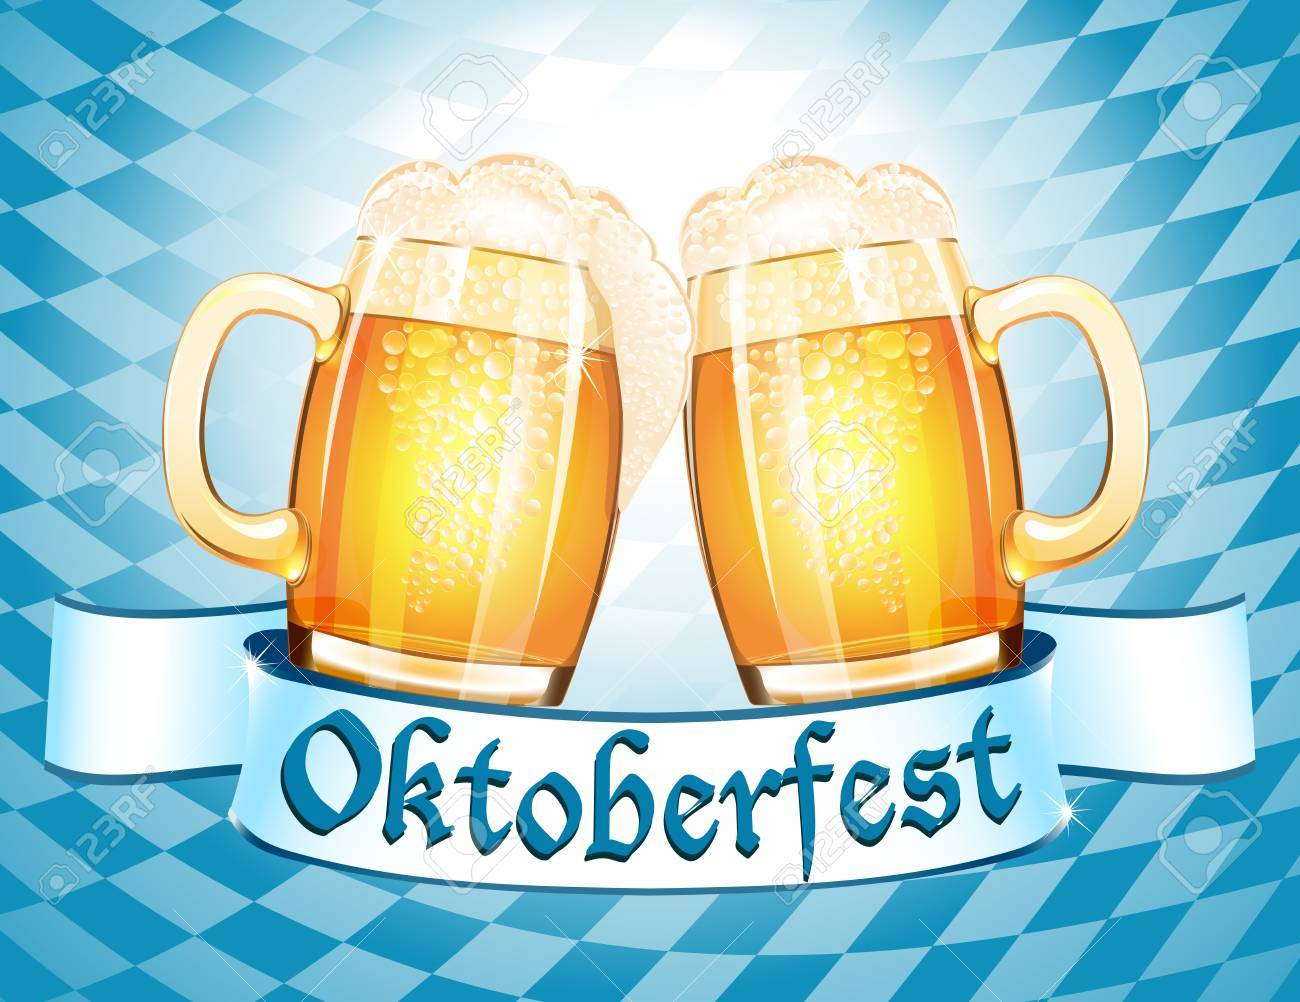 Oktoberfest celebration design Stock Vector - 22678018